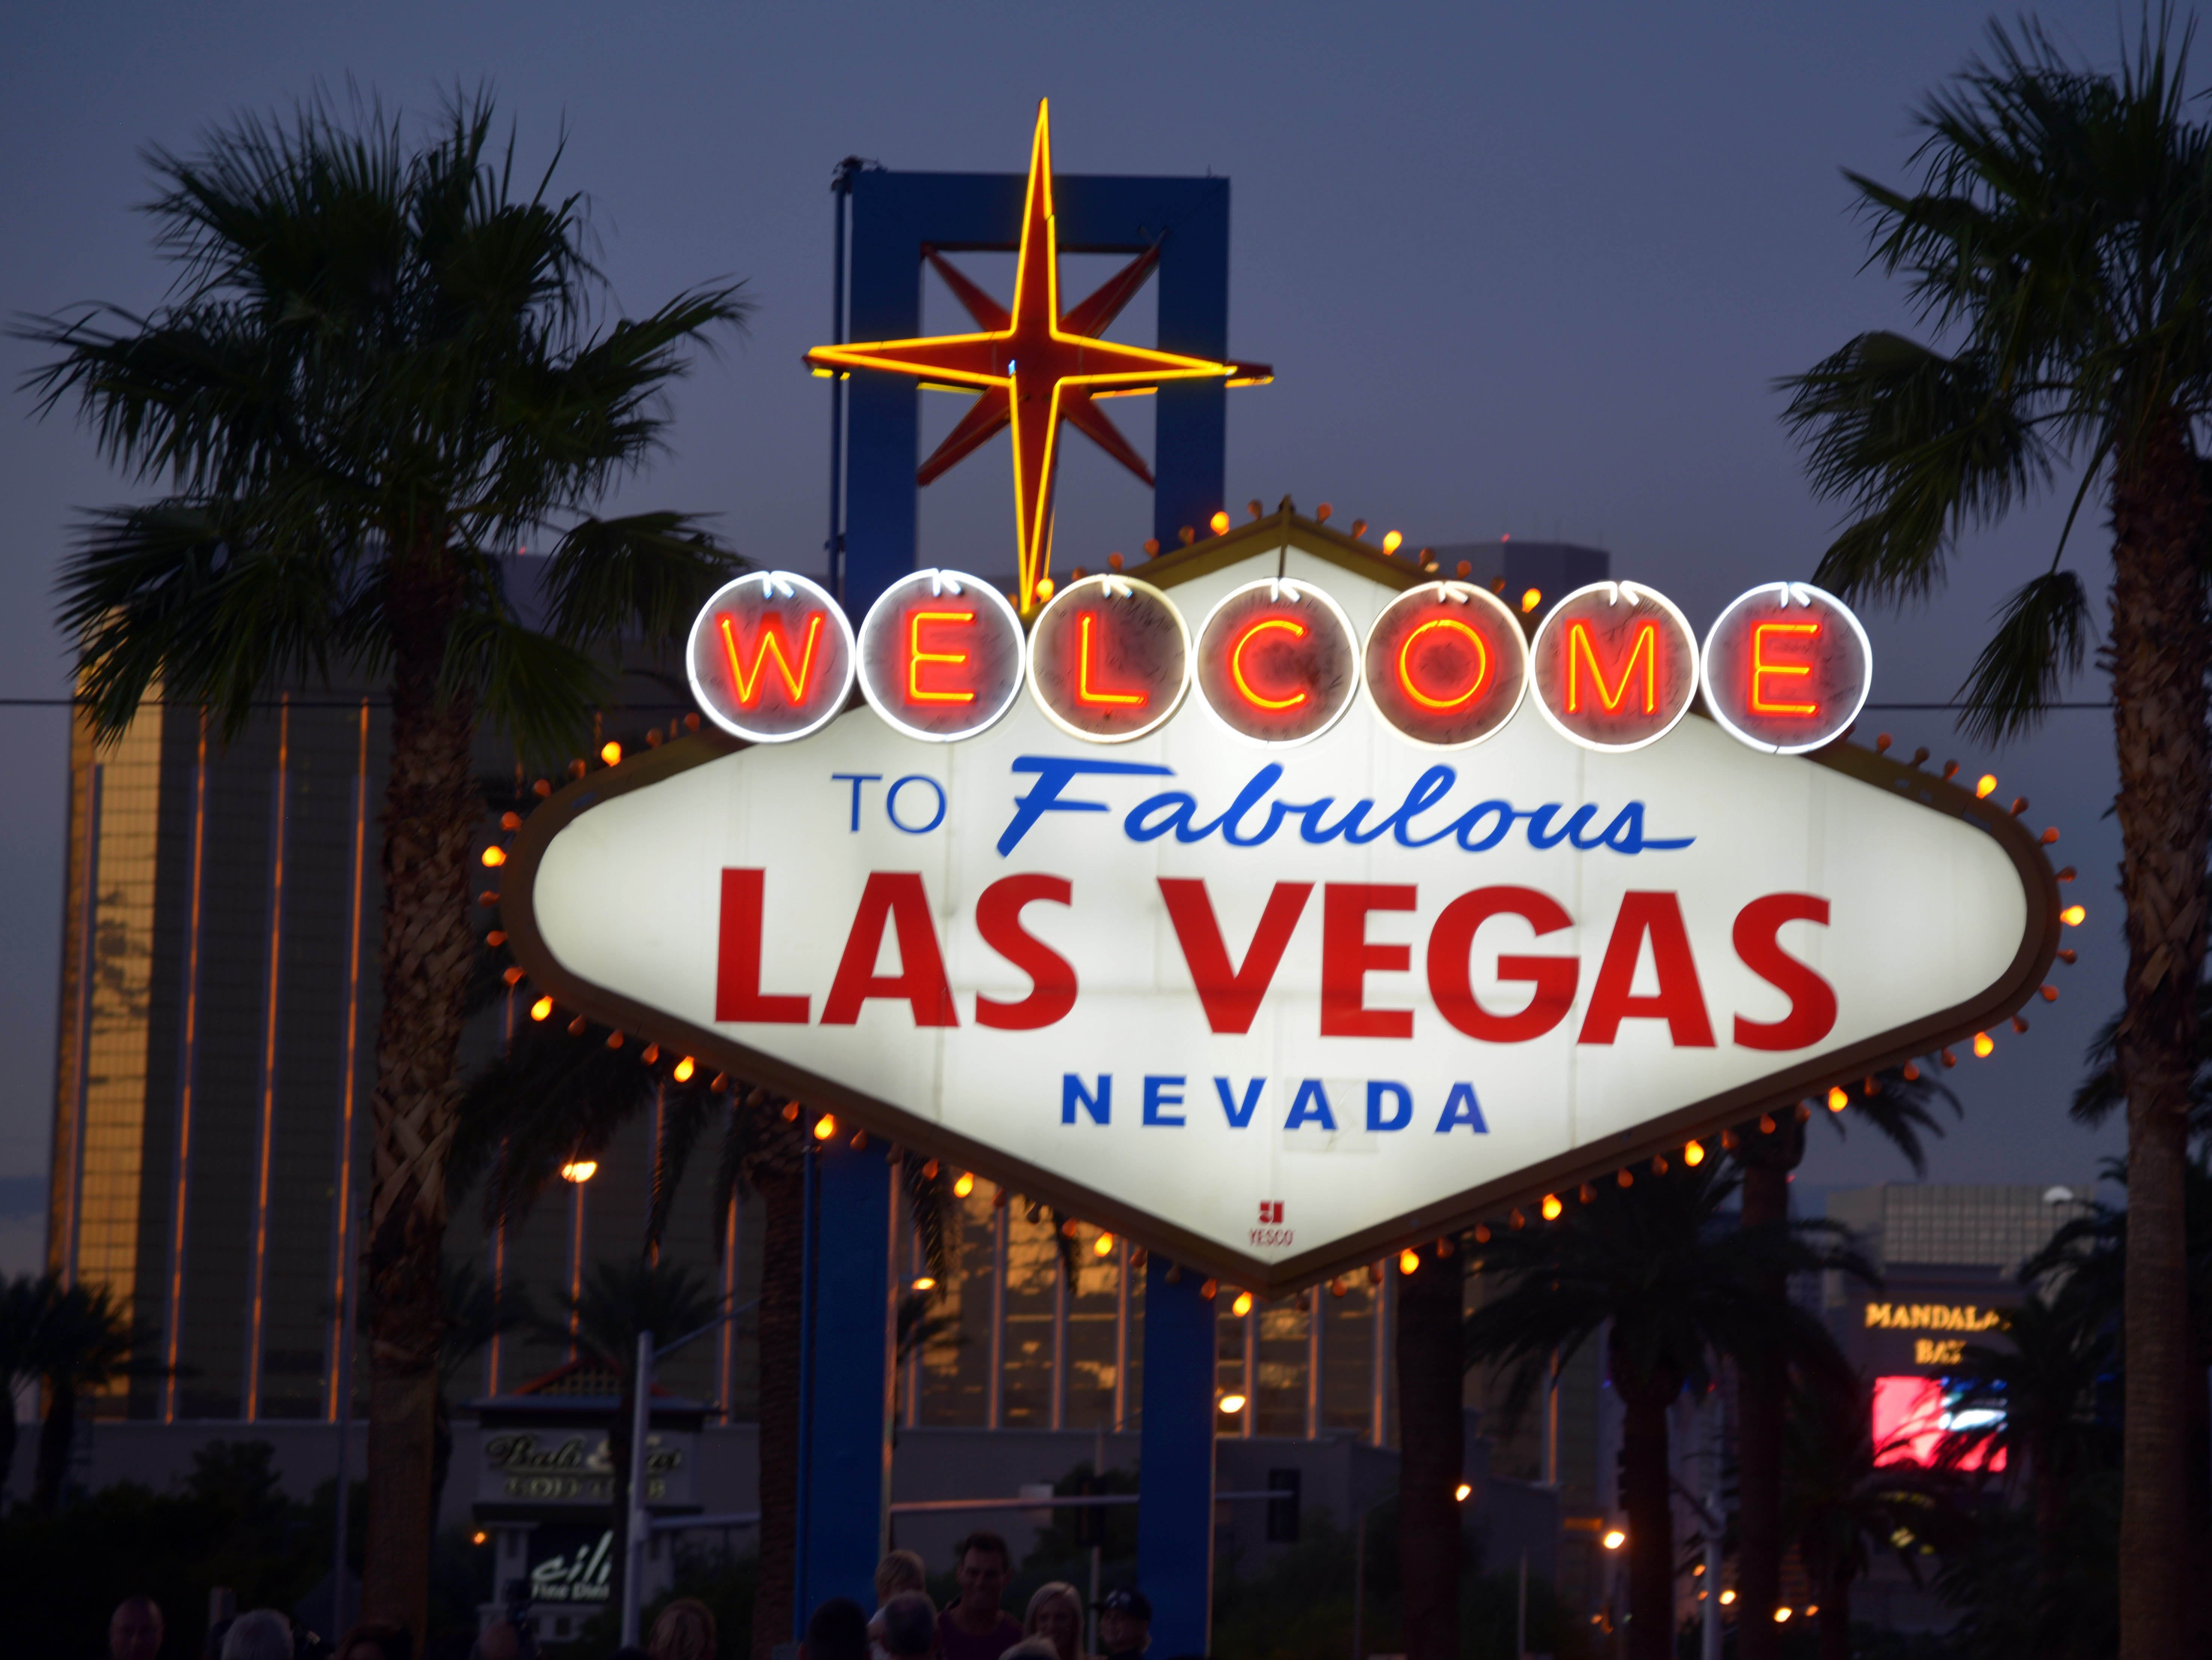 Today in History, March 19: Nevada legalized casino gambling